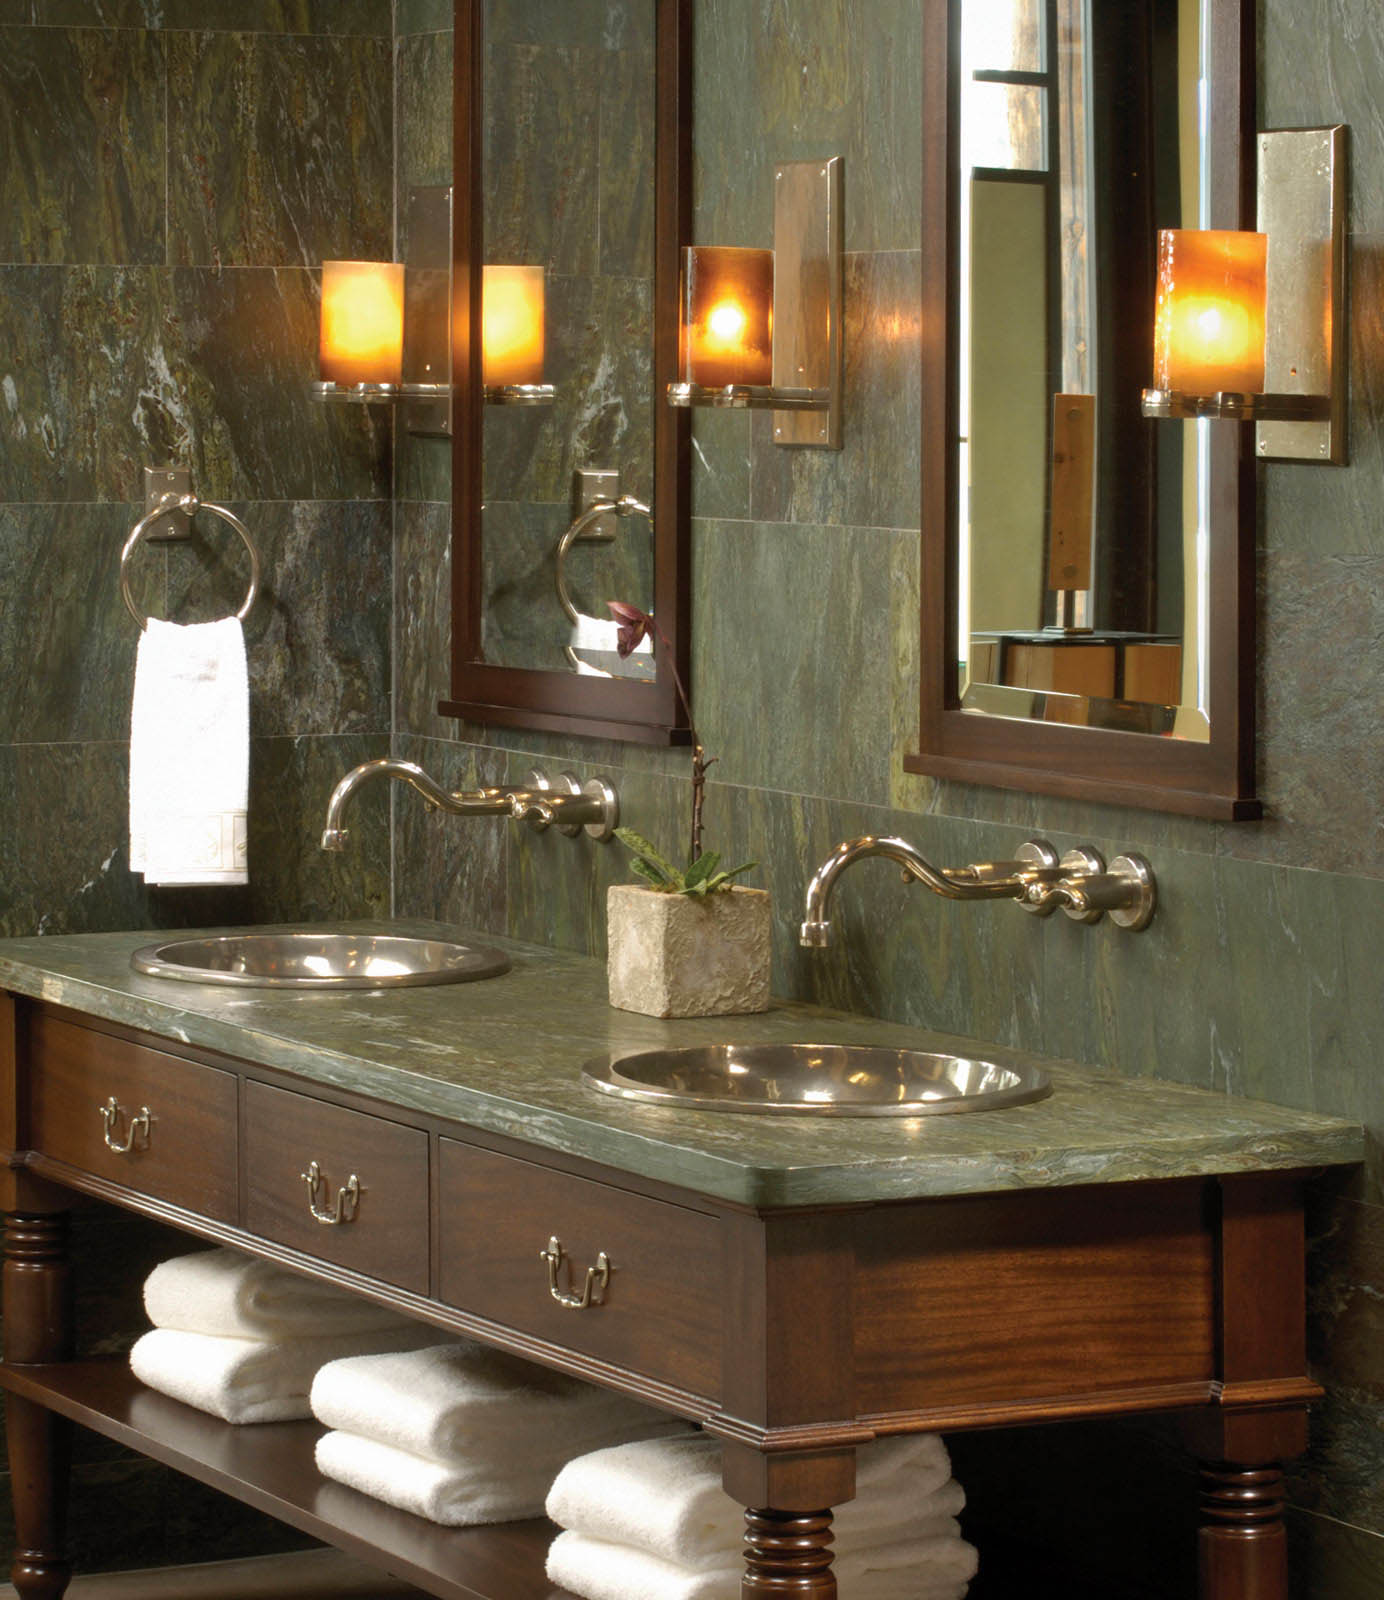 Wall Mount Faucet With Rectangular Escutcheon - rounded